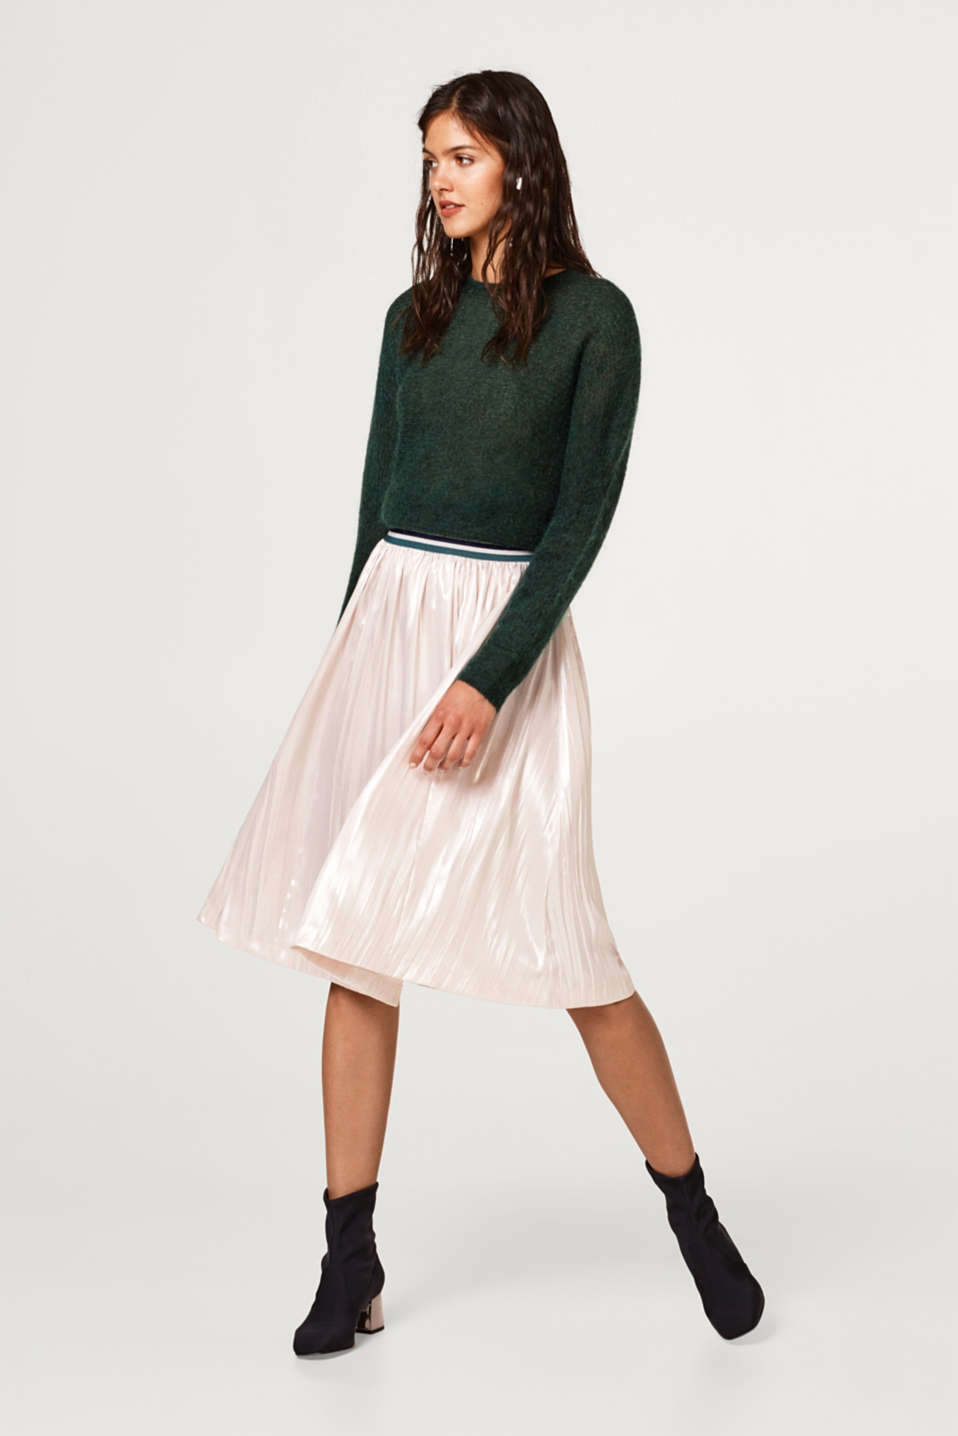 Pleated skirt with a metallic coating and elasticated waistband